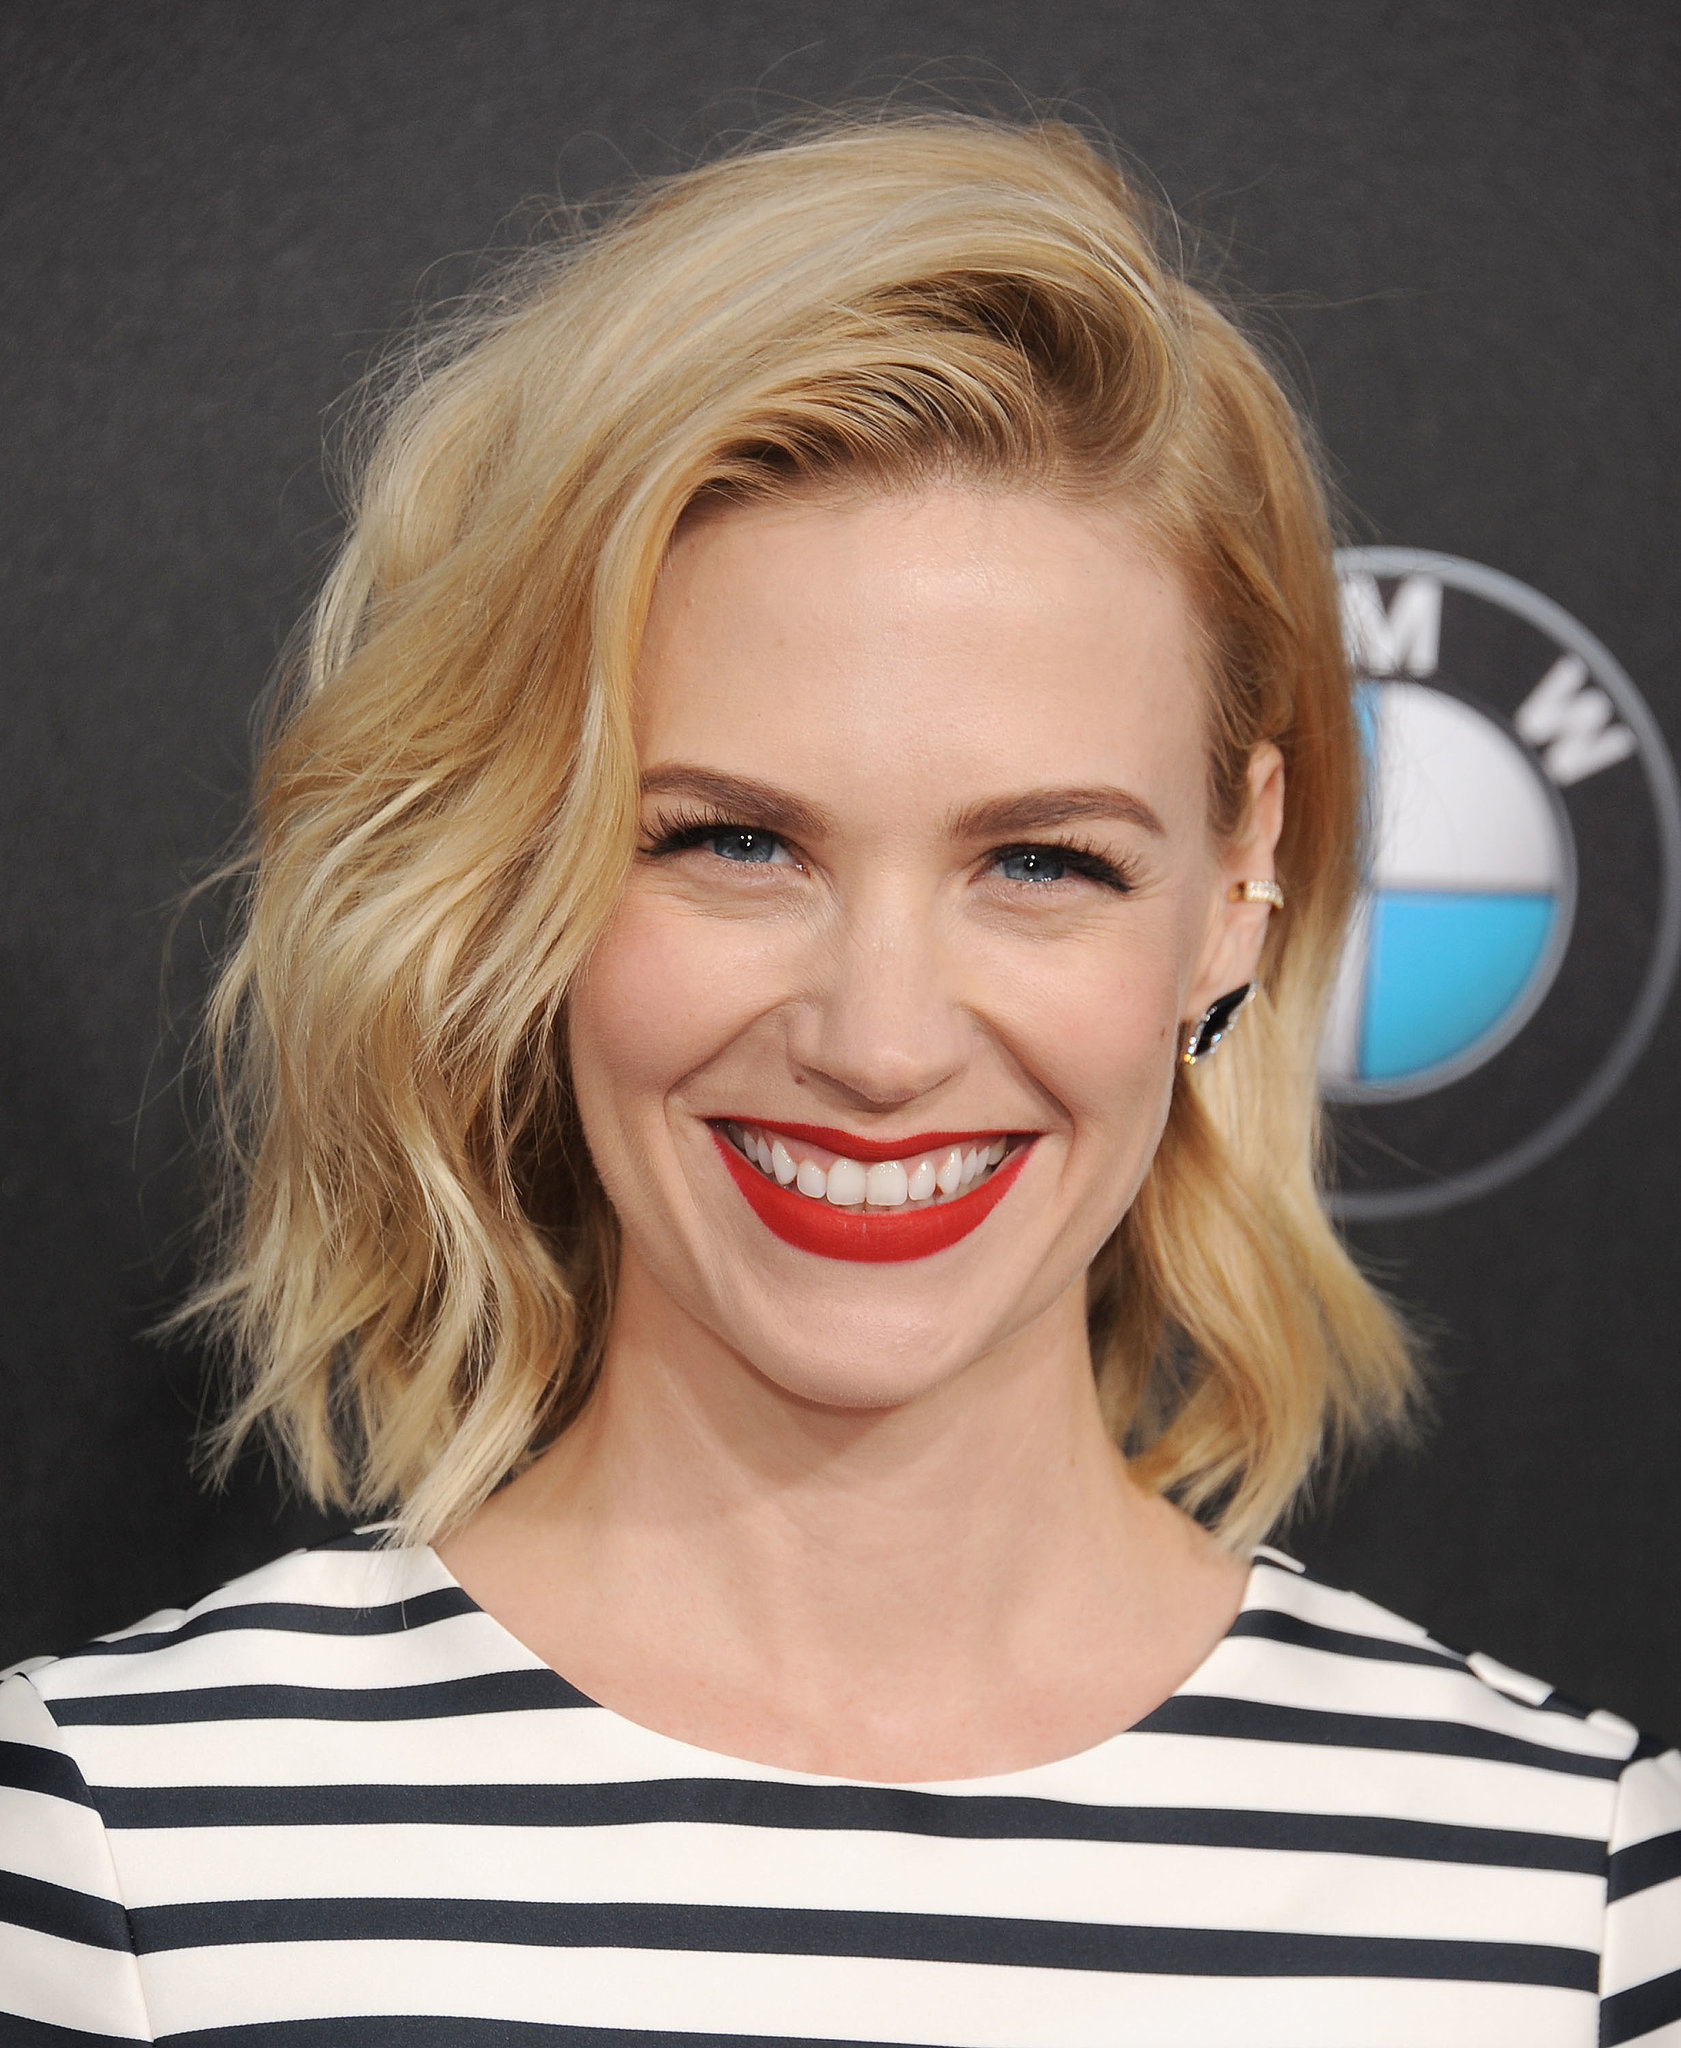 January Jones earned a  million dollar salary - leaving the net worth at 10 million in 2018